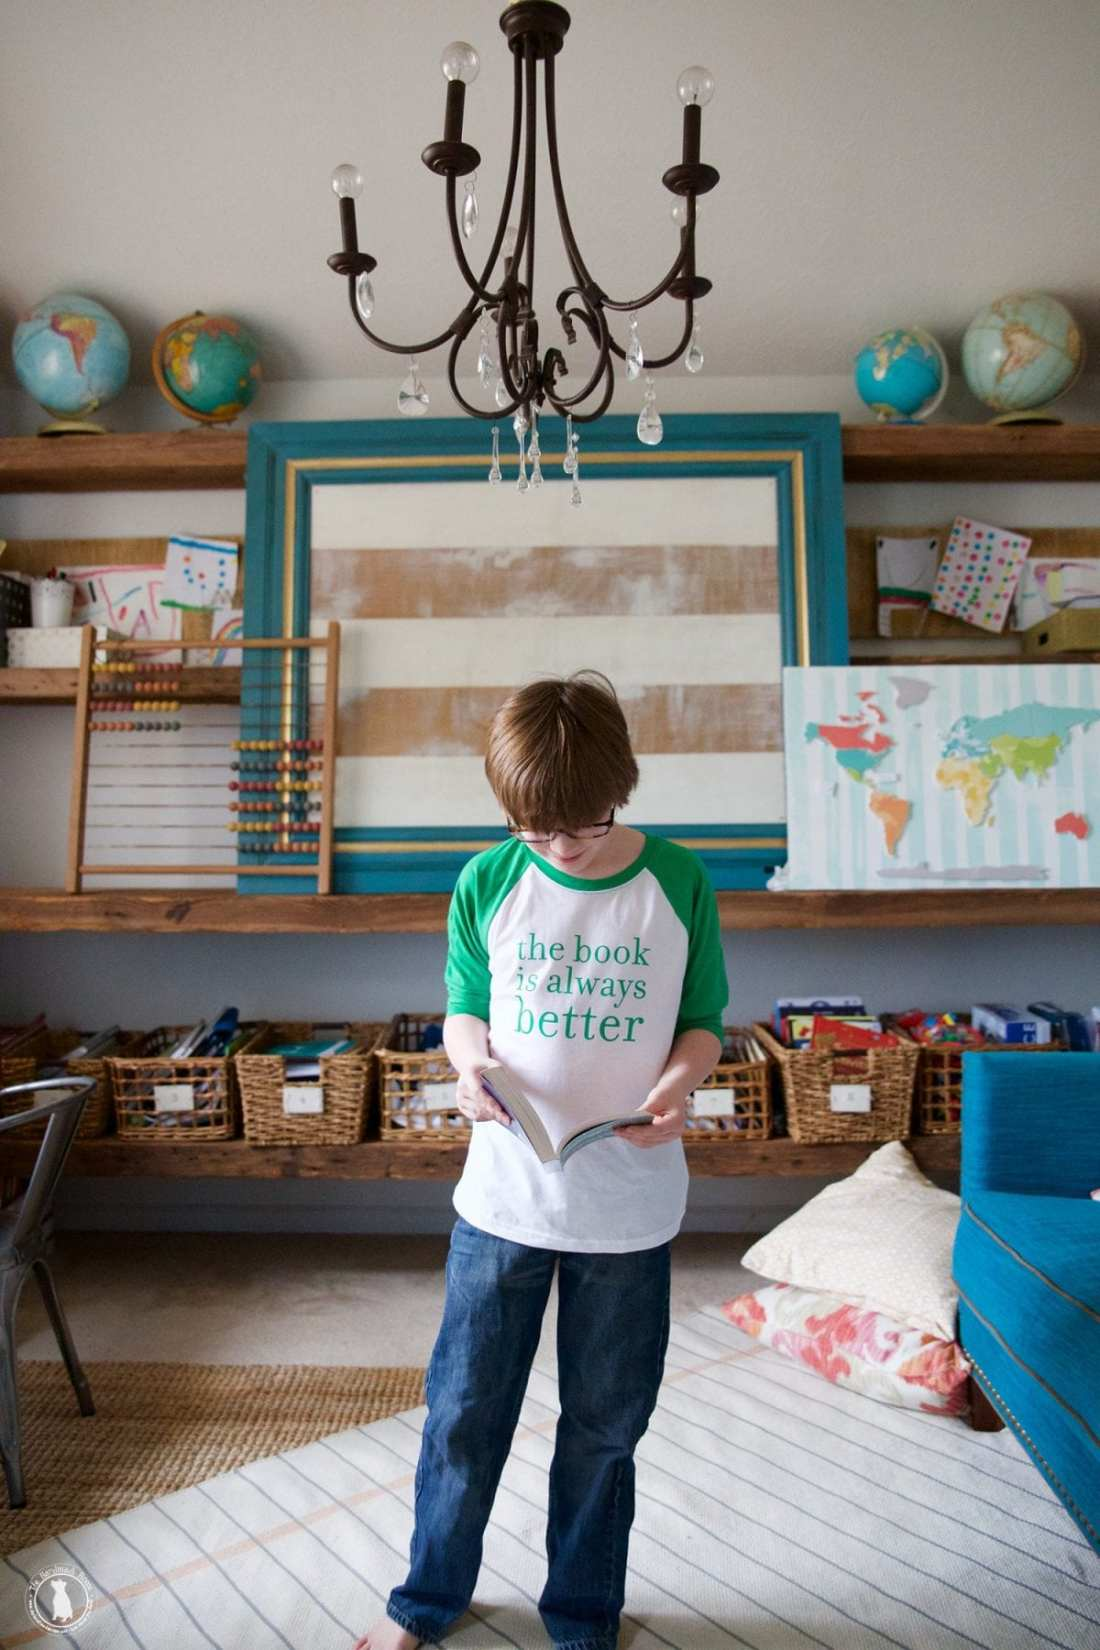 the_book_is_always_better_childrens_tshirt